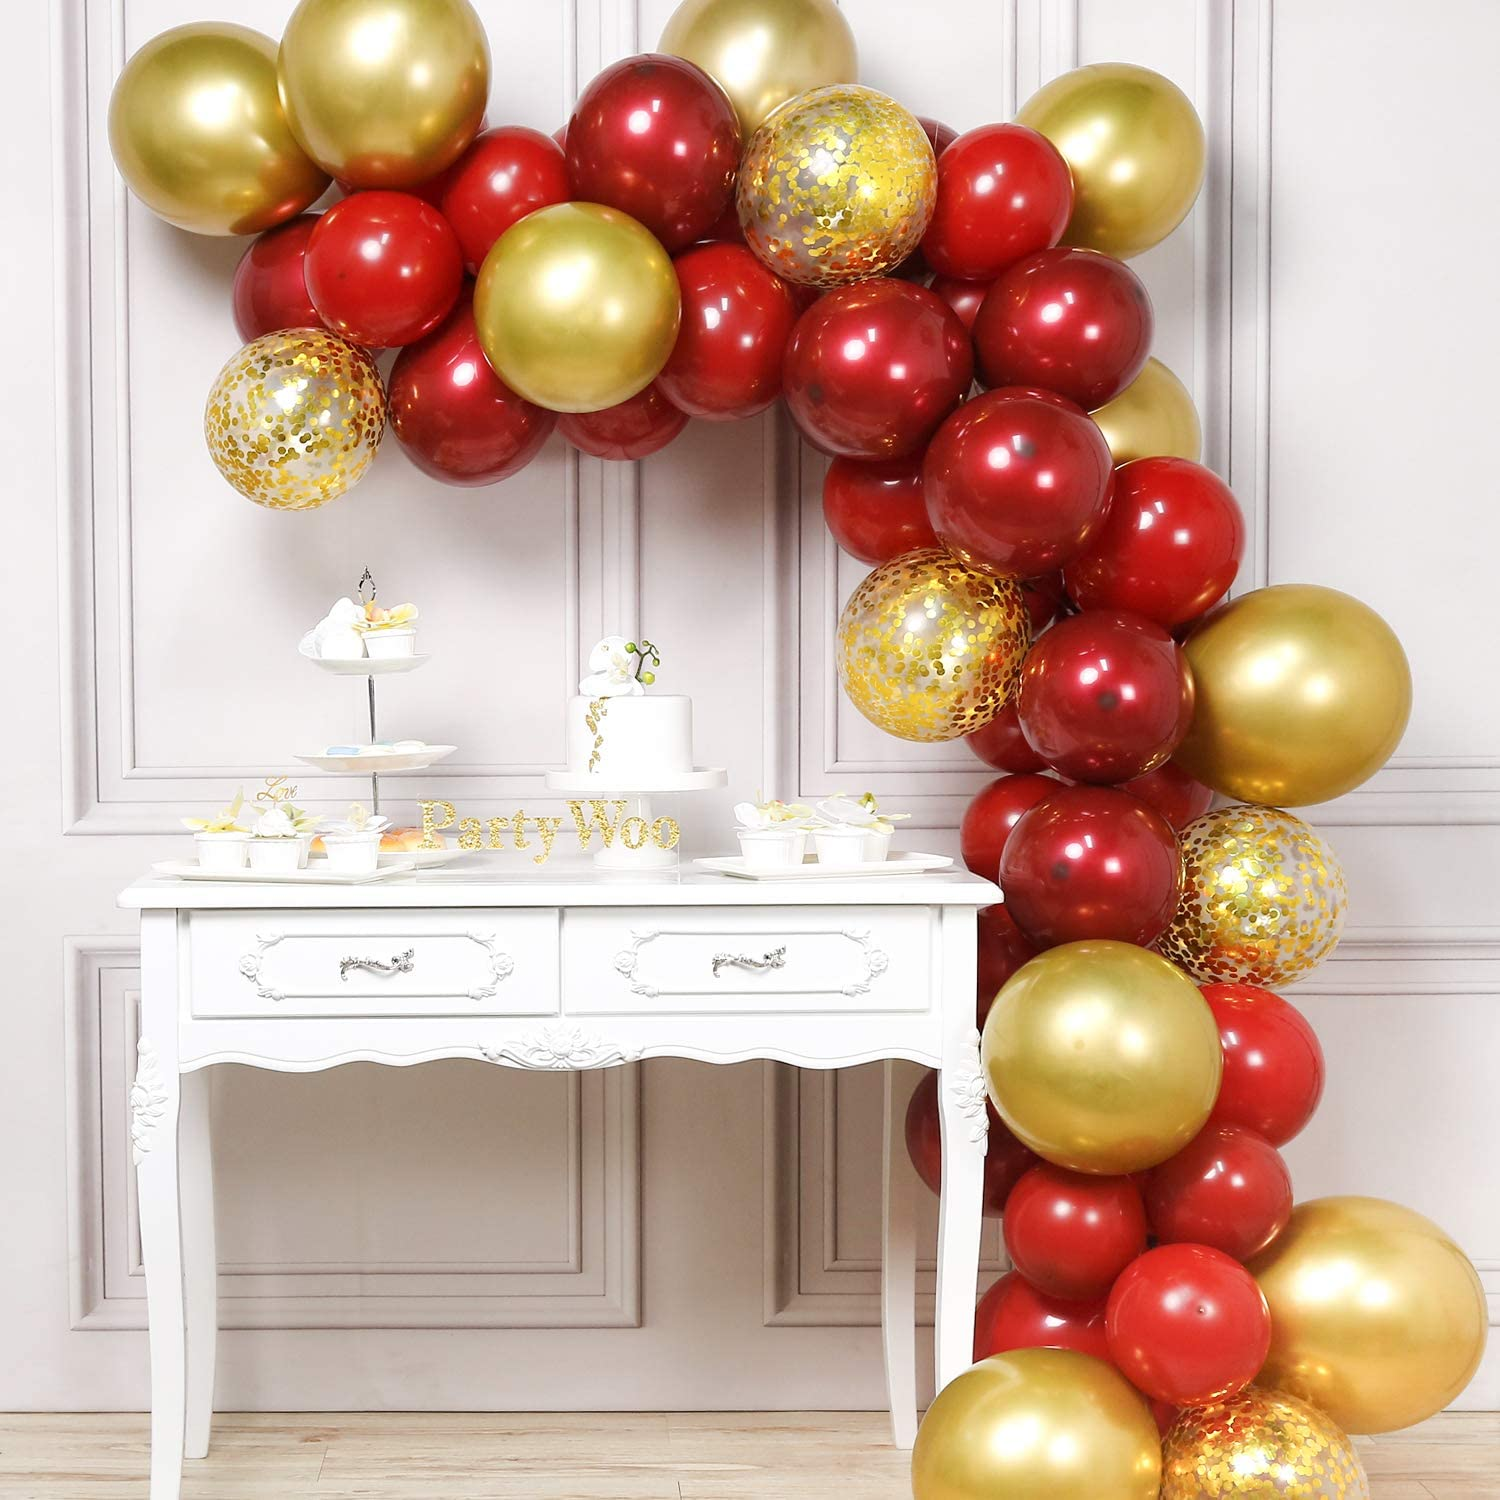 PartyWoo Red and Gold Balloons, 50 pcs Burgundy Balloons, Ruby Red Balloons, Gold Confetti Balloons, Gold Metallic Balloons for Red and Gold Party Decorations, Burgundy Party Decorations